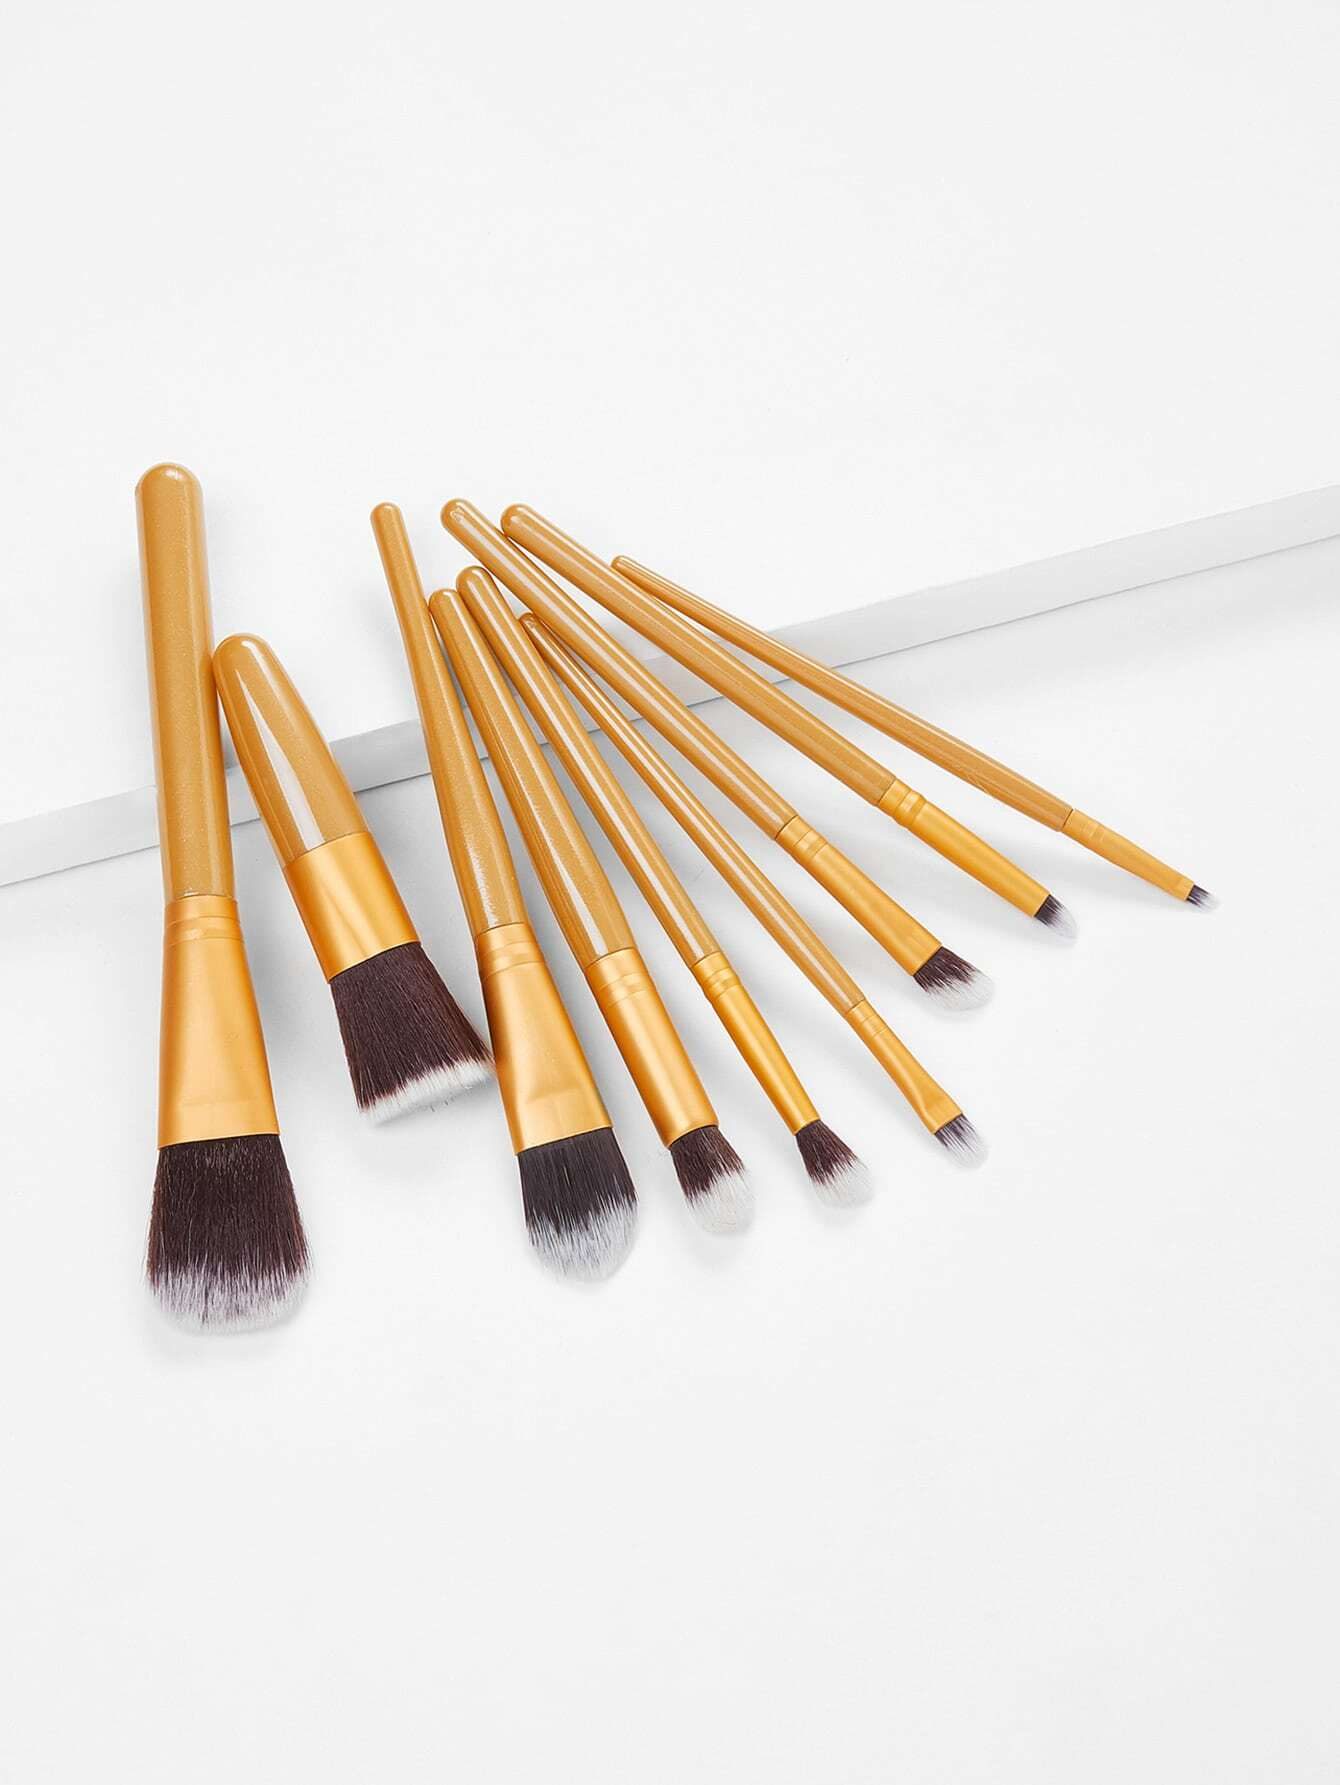 9pcs Professional Makeup Brush Set